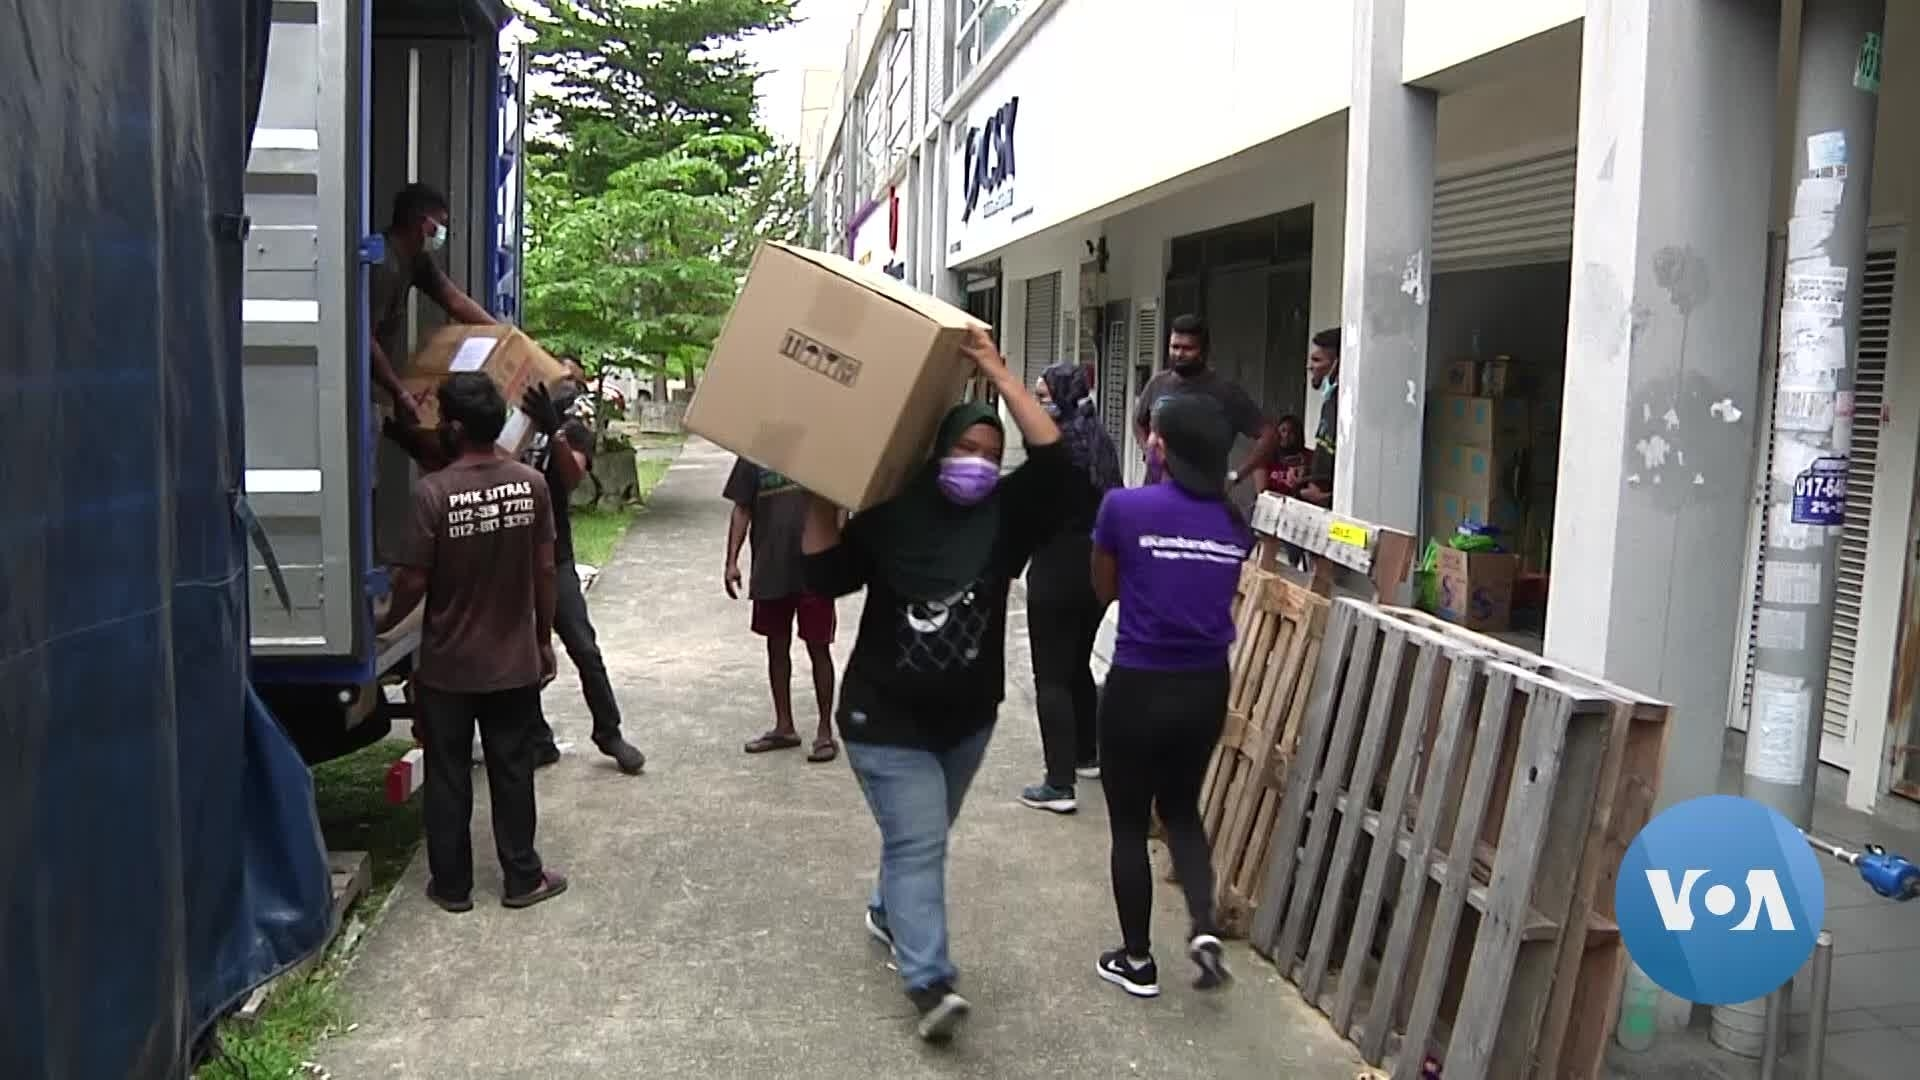 COVID Struck Area in Malaysia Gets Help from Donors, Volunteers